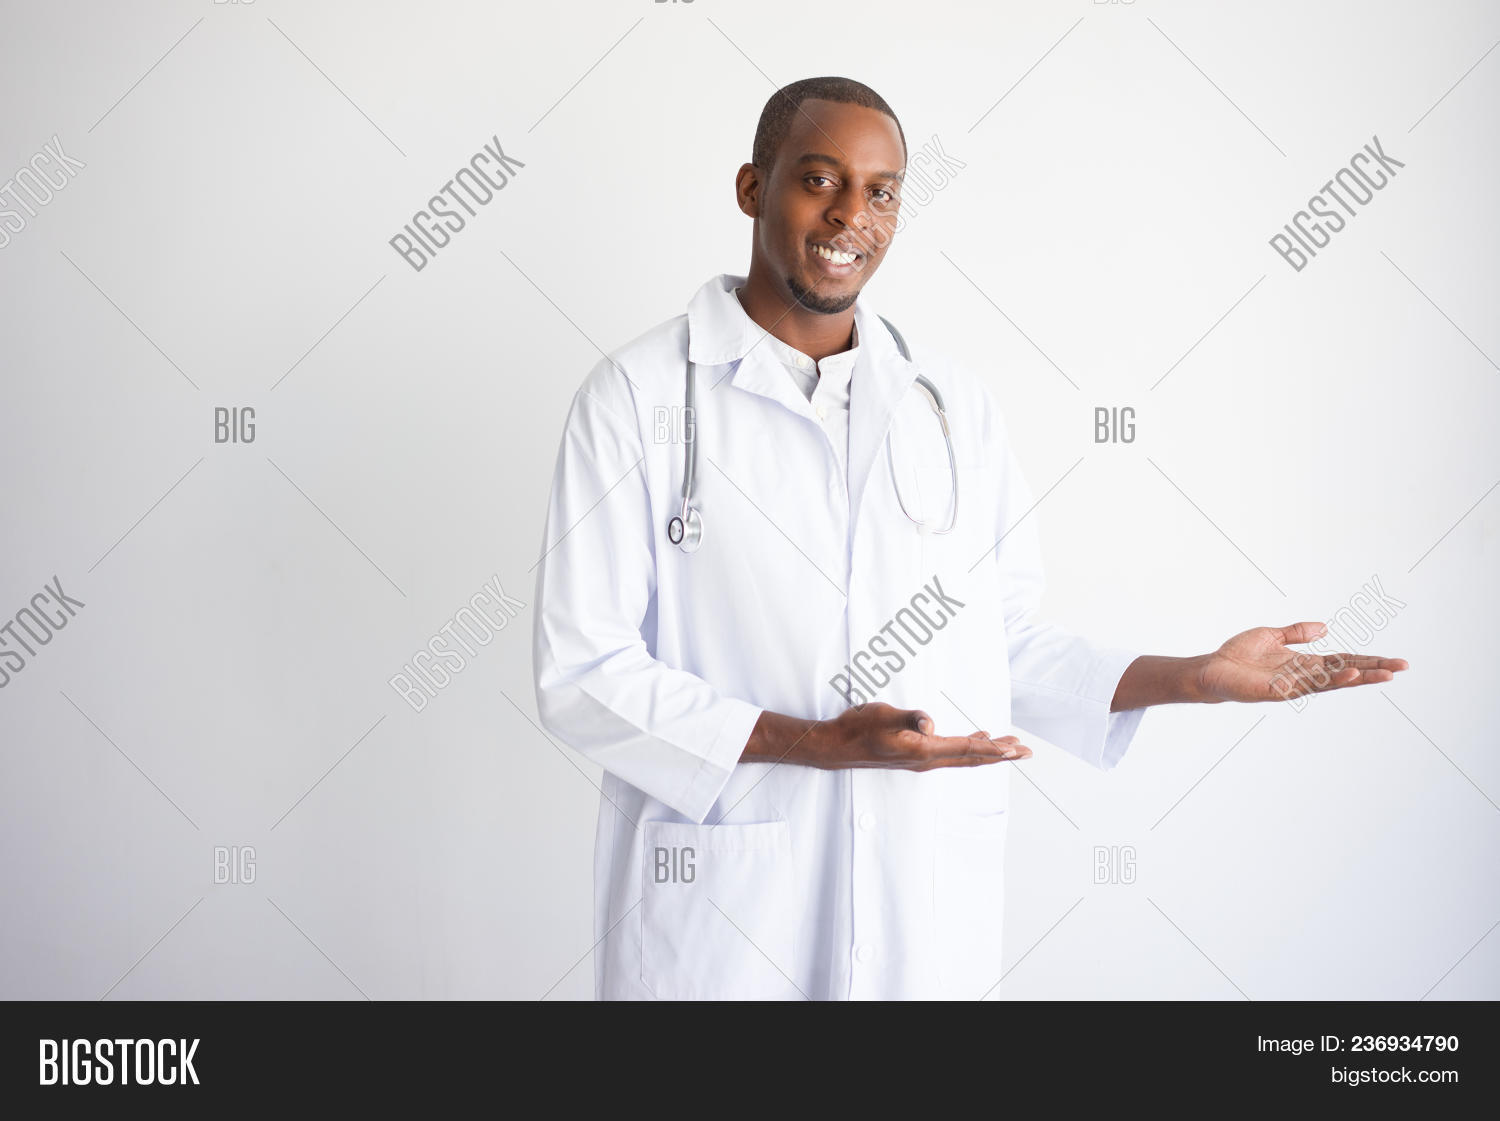 843165c97ab Happy black male doctor pointing at empty space and presenting service.  Medical service advertising concept. Isolated front view on white background .